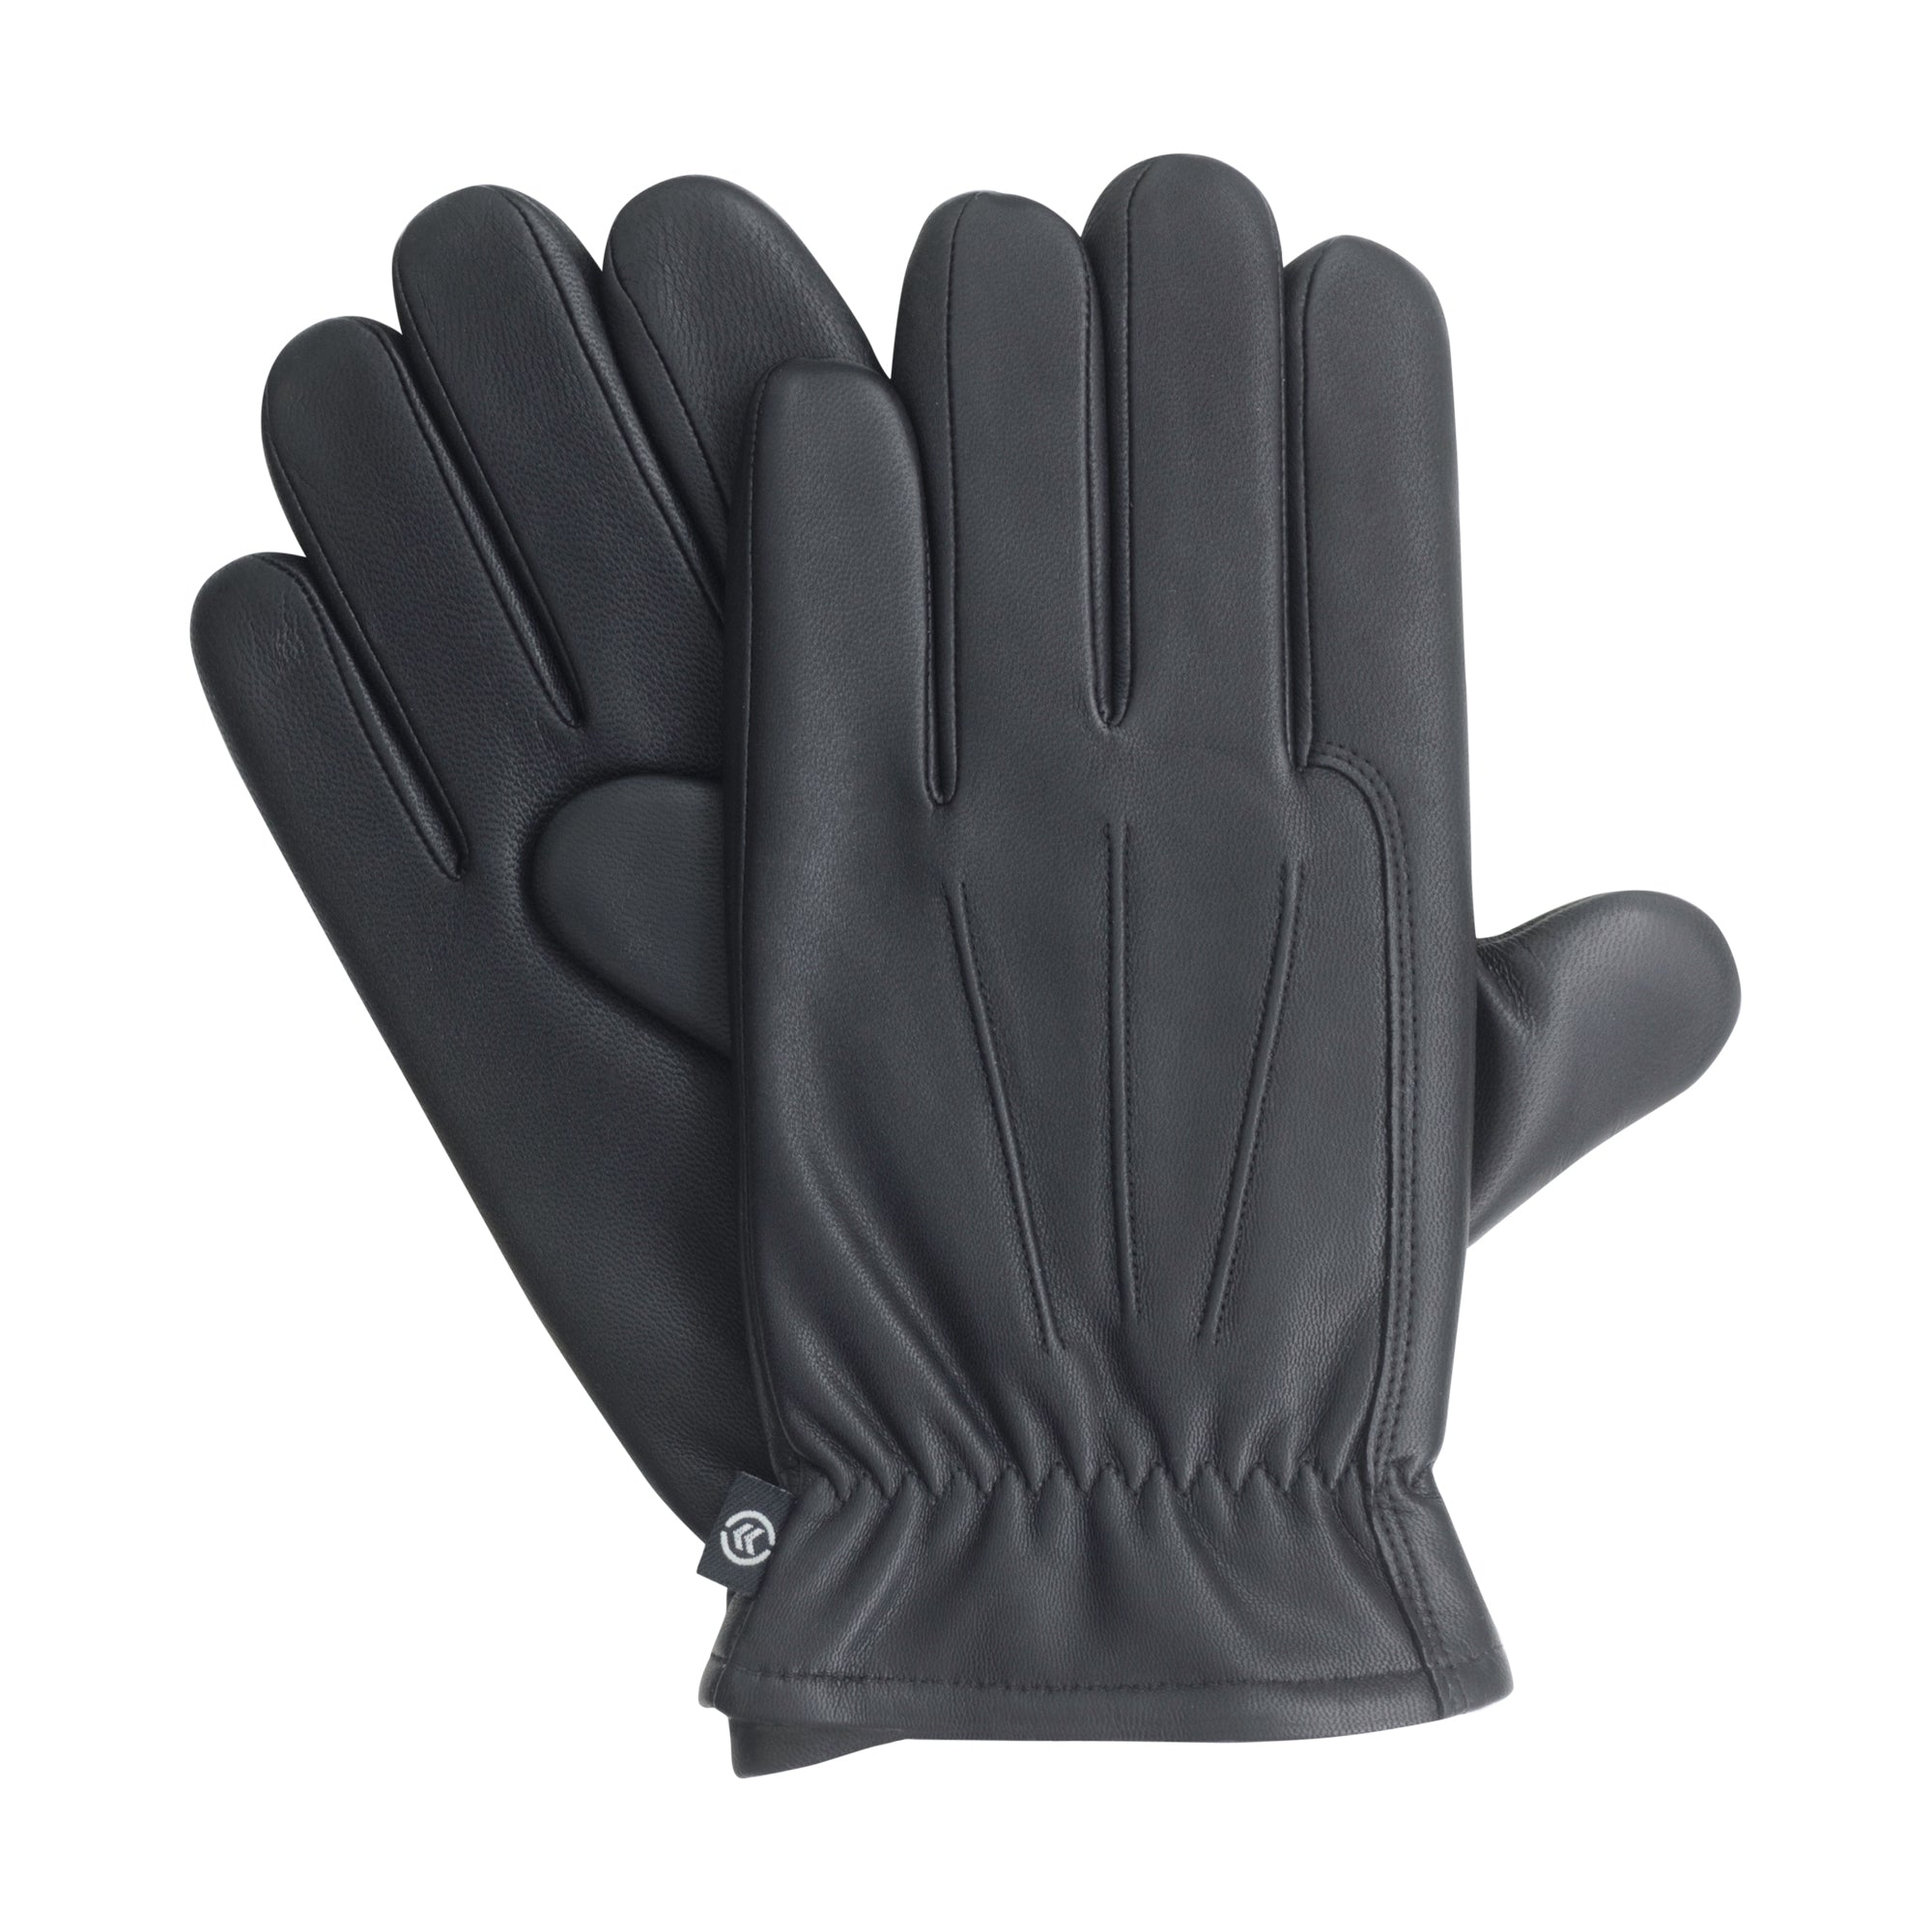 Isotoner Men's Classic Kidskin Leather Gloves